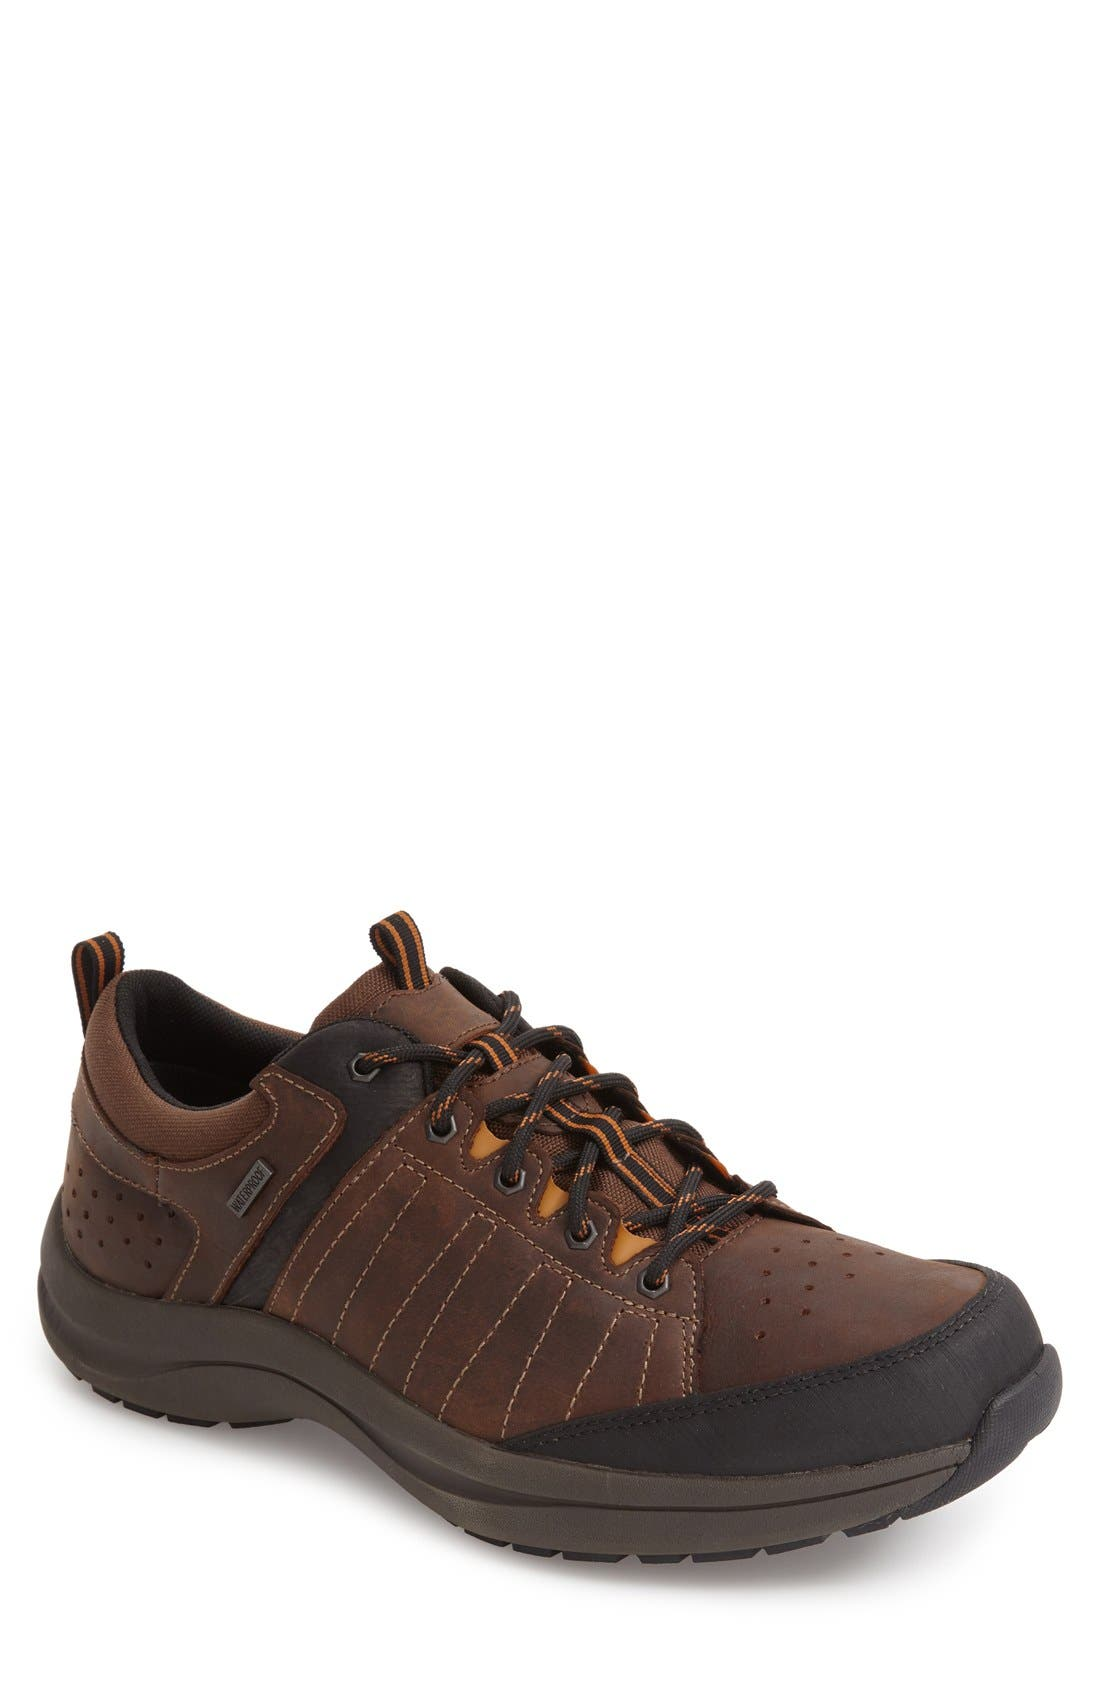 DUNHAM, Seth-Dun Waterproof Sneaker, Alternate thumbnail 5, color, BROWN LEATHER